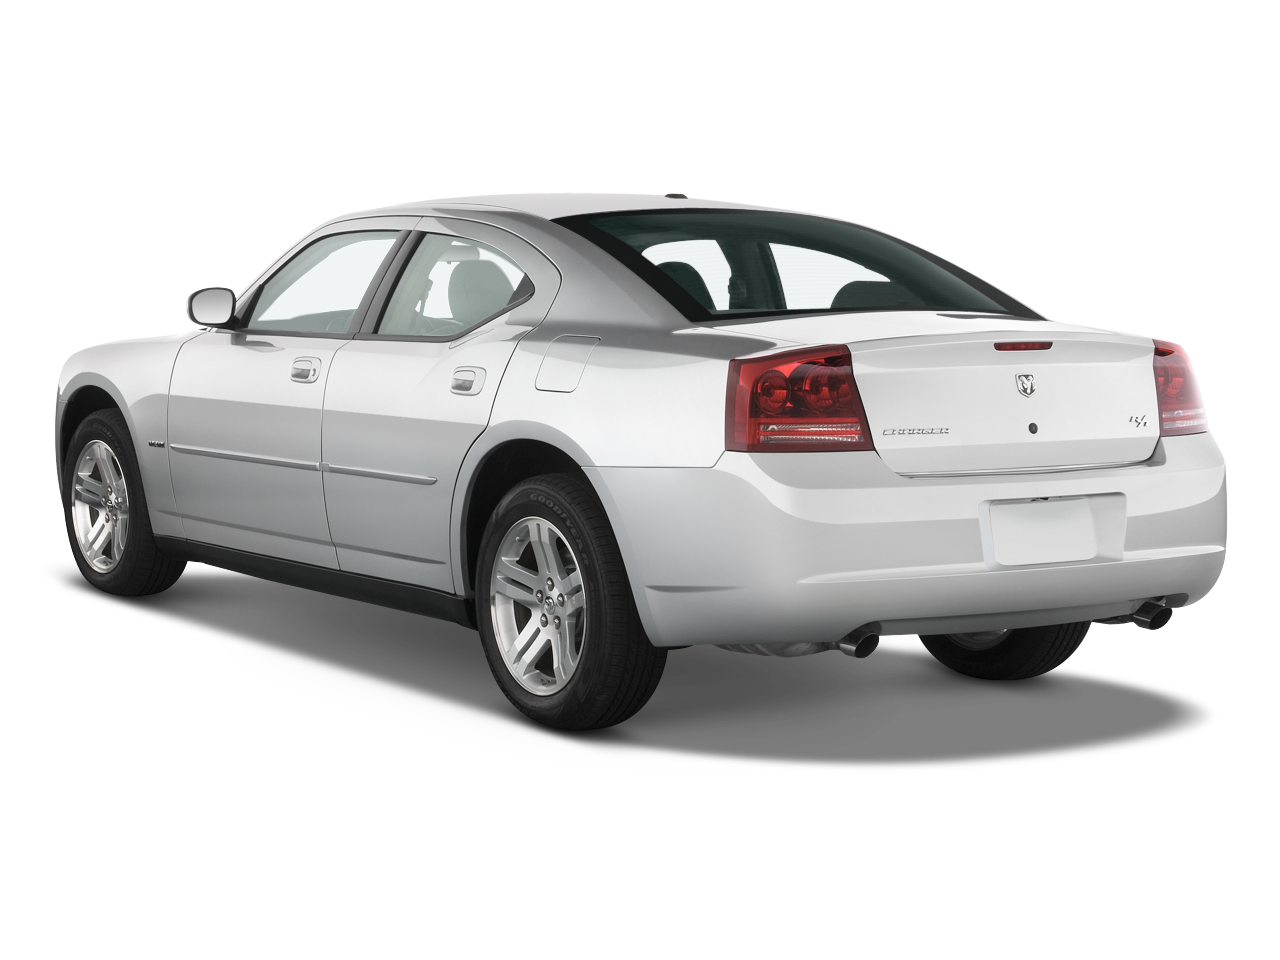 2008 Charger Rt >> 2008 Dodge Charger Reviews Research Charger Prices Specs Motor Trend En Espanol